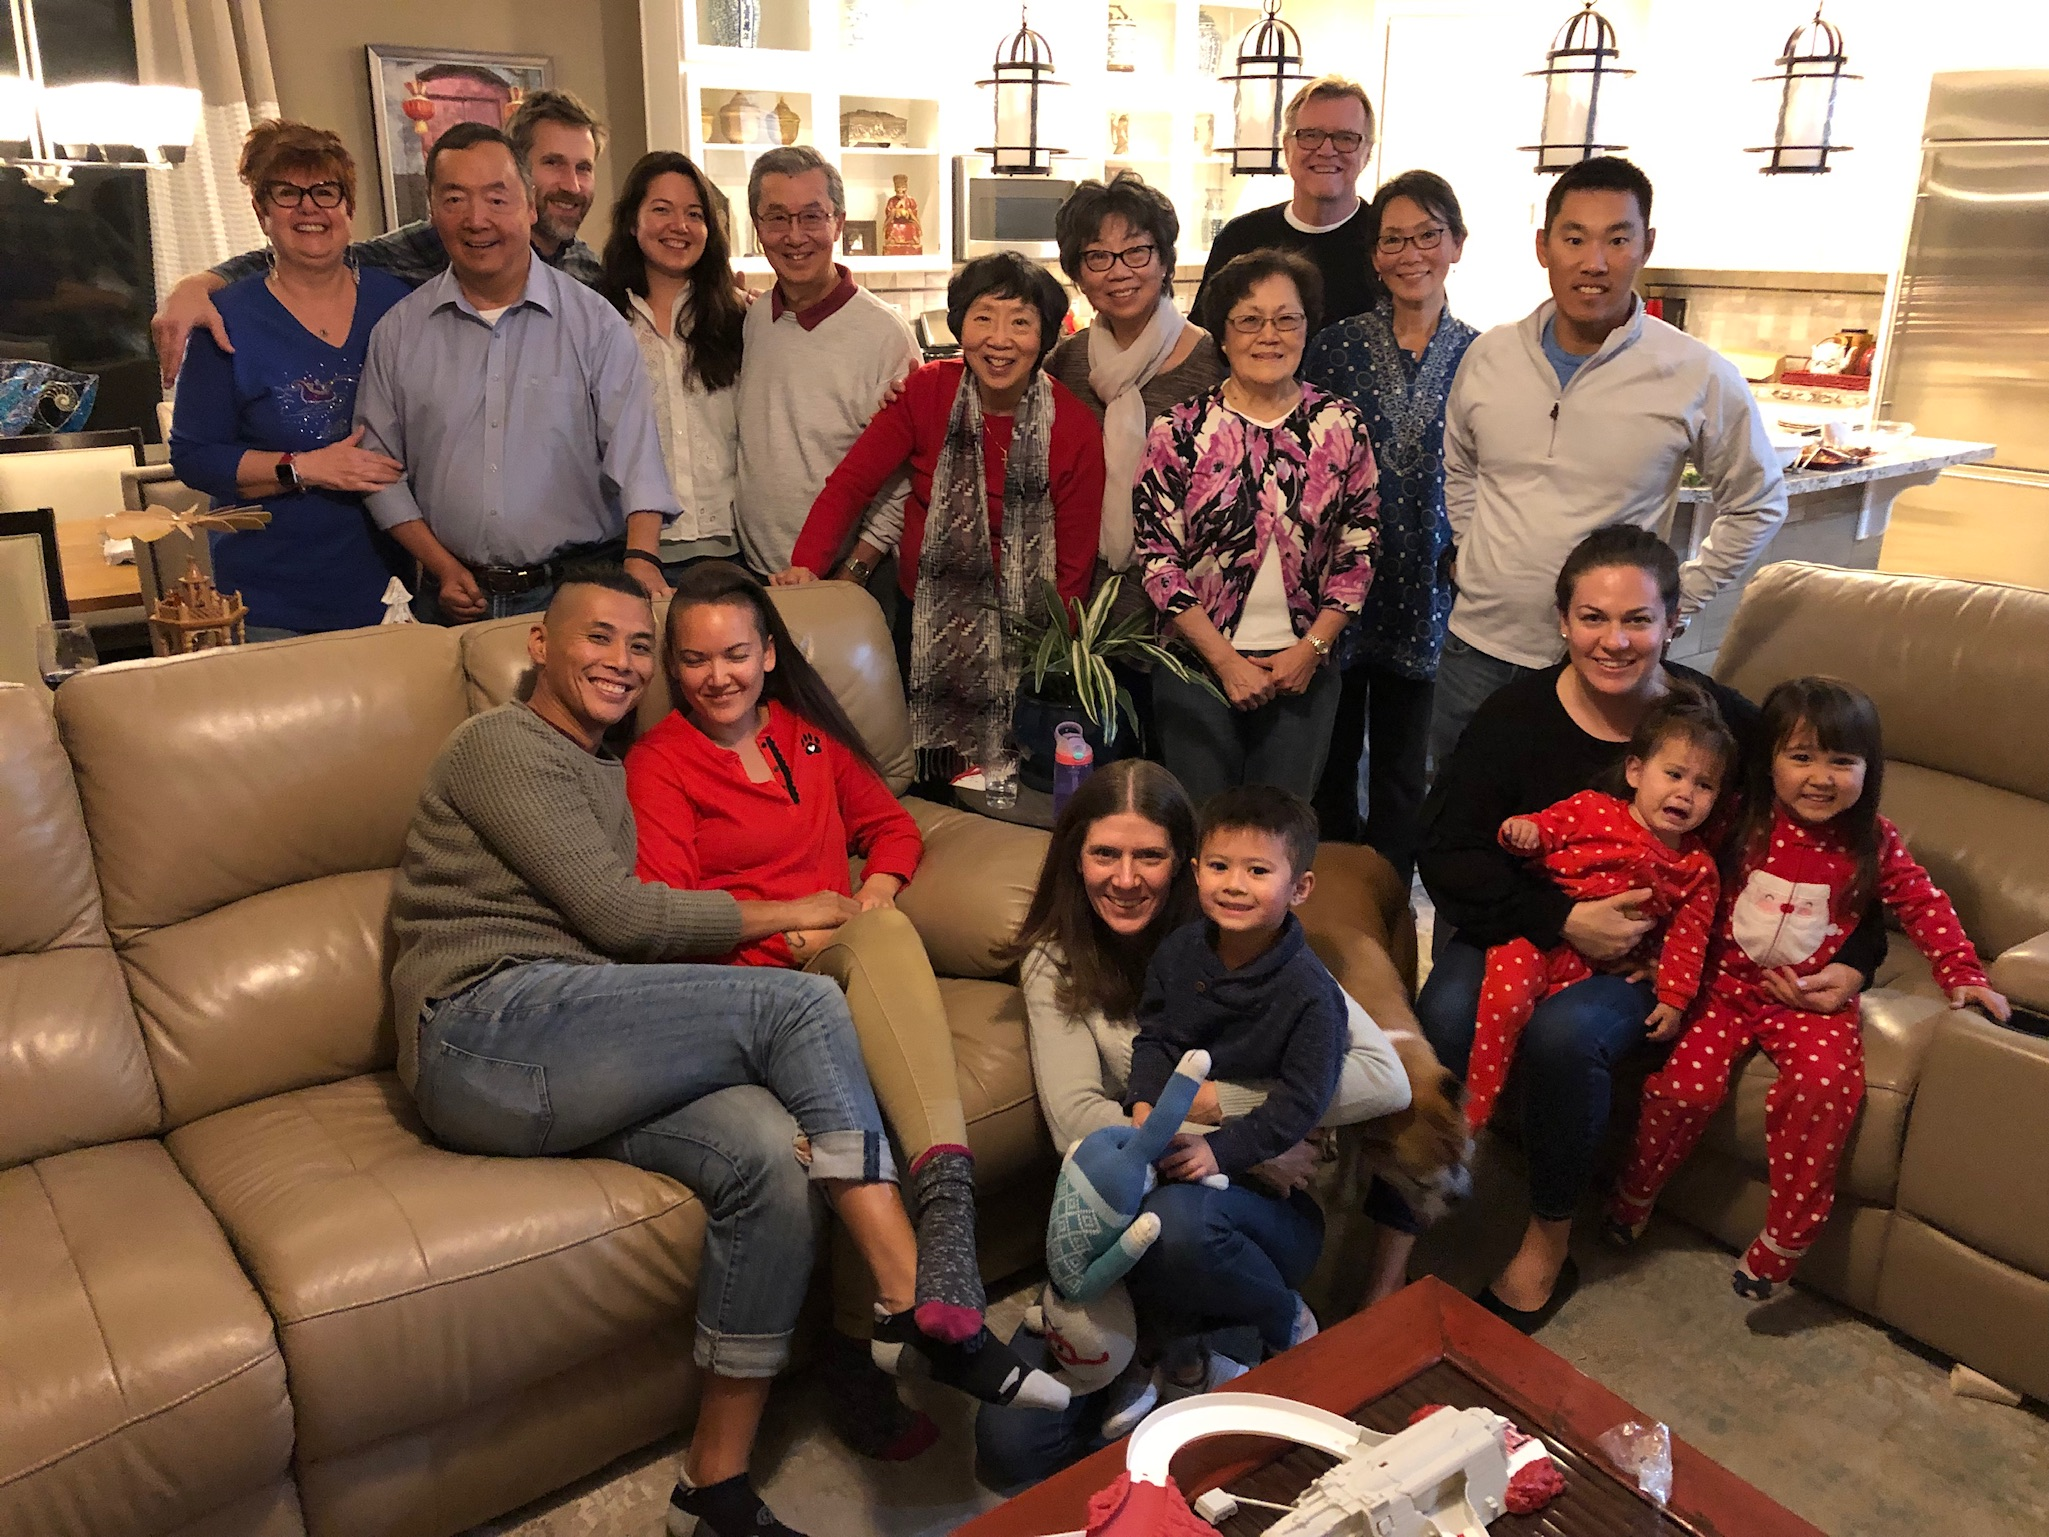 Whitney (bottom left, in red, with her eyes closed) with some of her family and relatives celebrating Christmas (2018). Every child in the family's youngest generation is a special variety of mixed race.